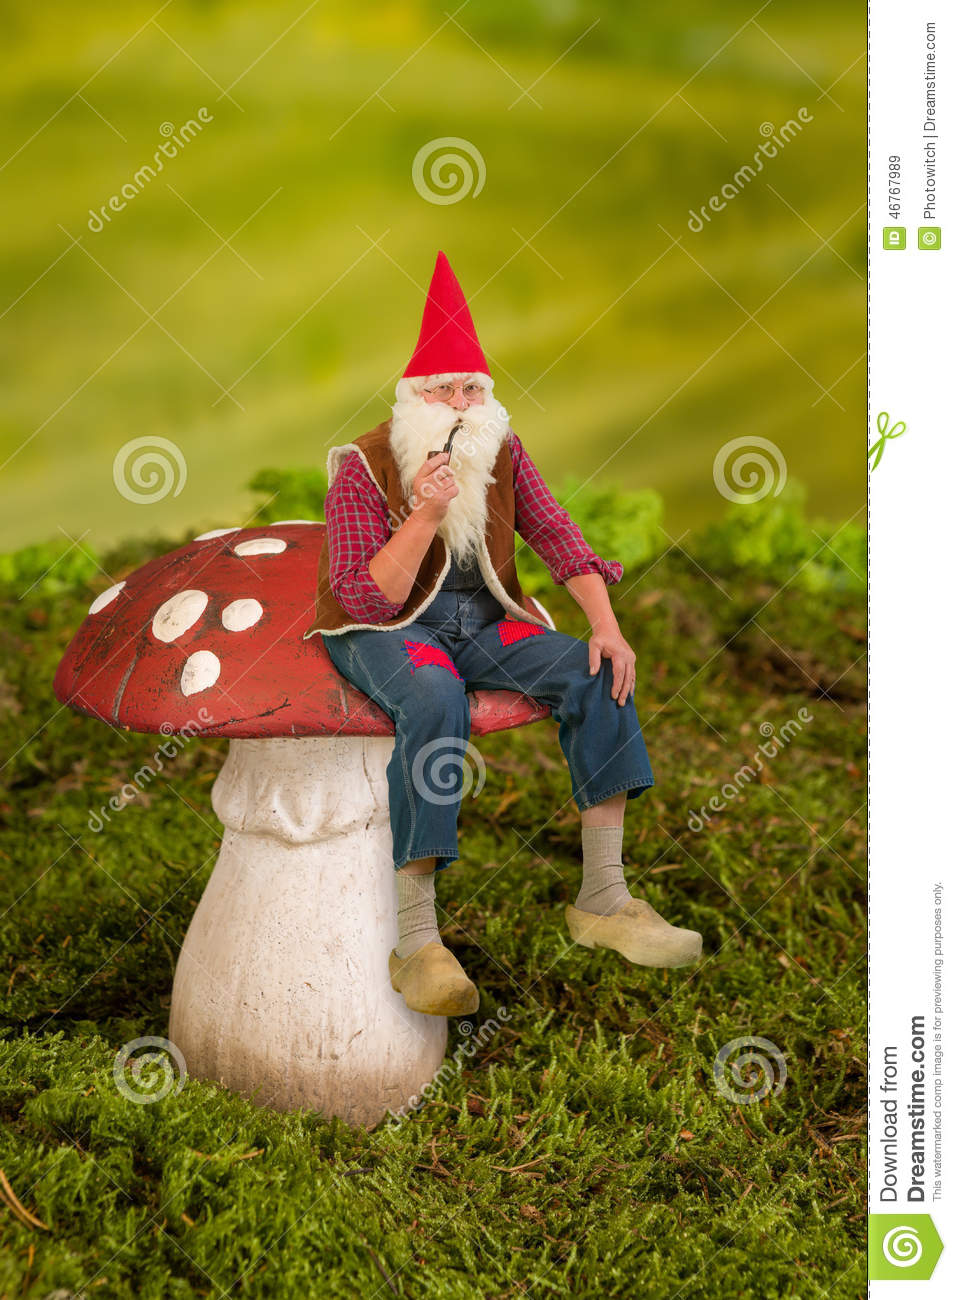 Real Gnomes: Gnome On Toadstool Stock Image. Image Of Mushroom, Grass